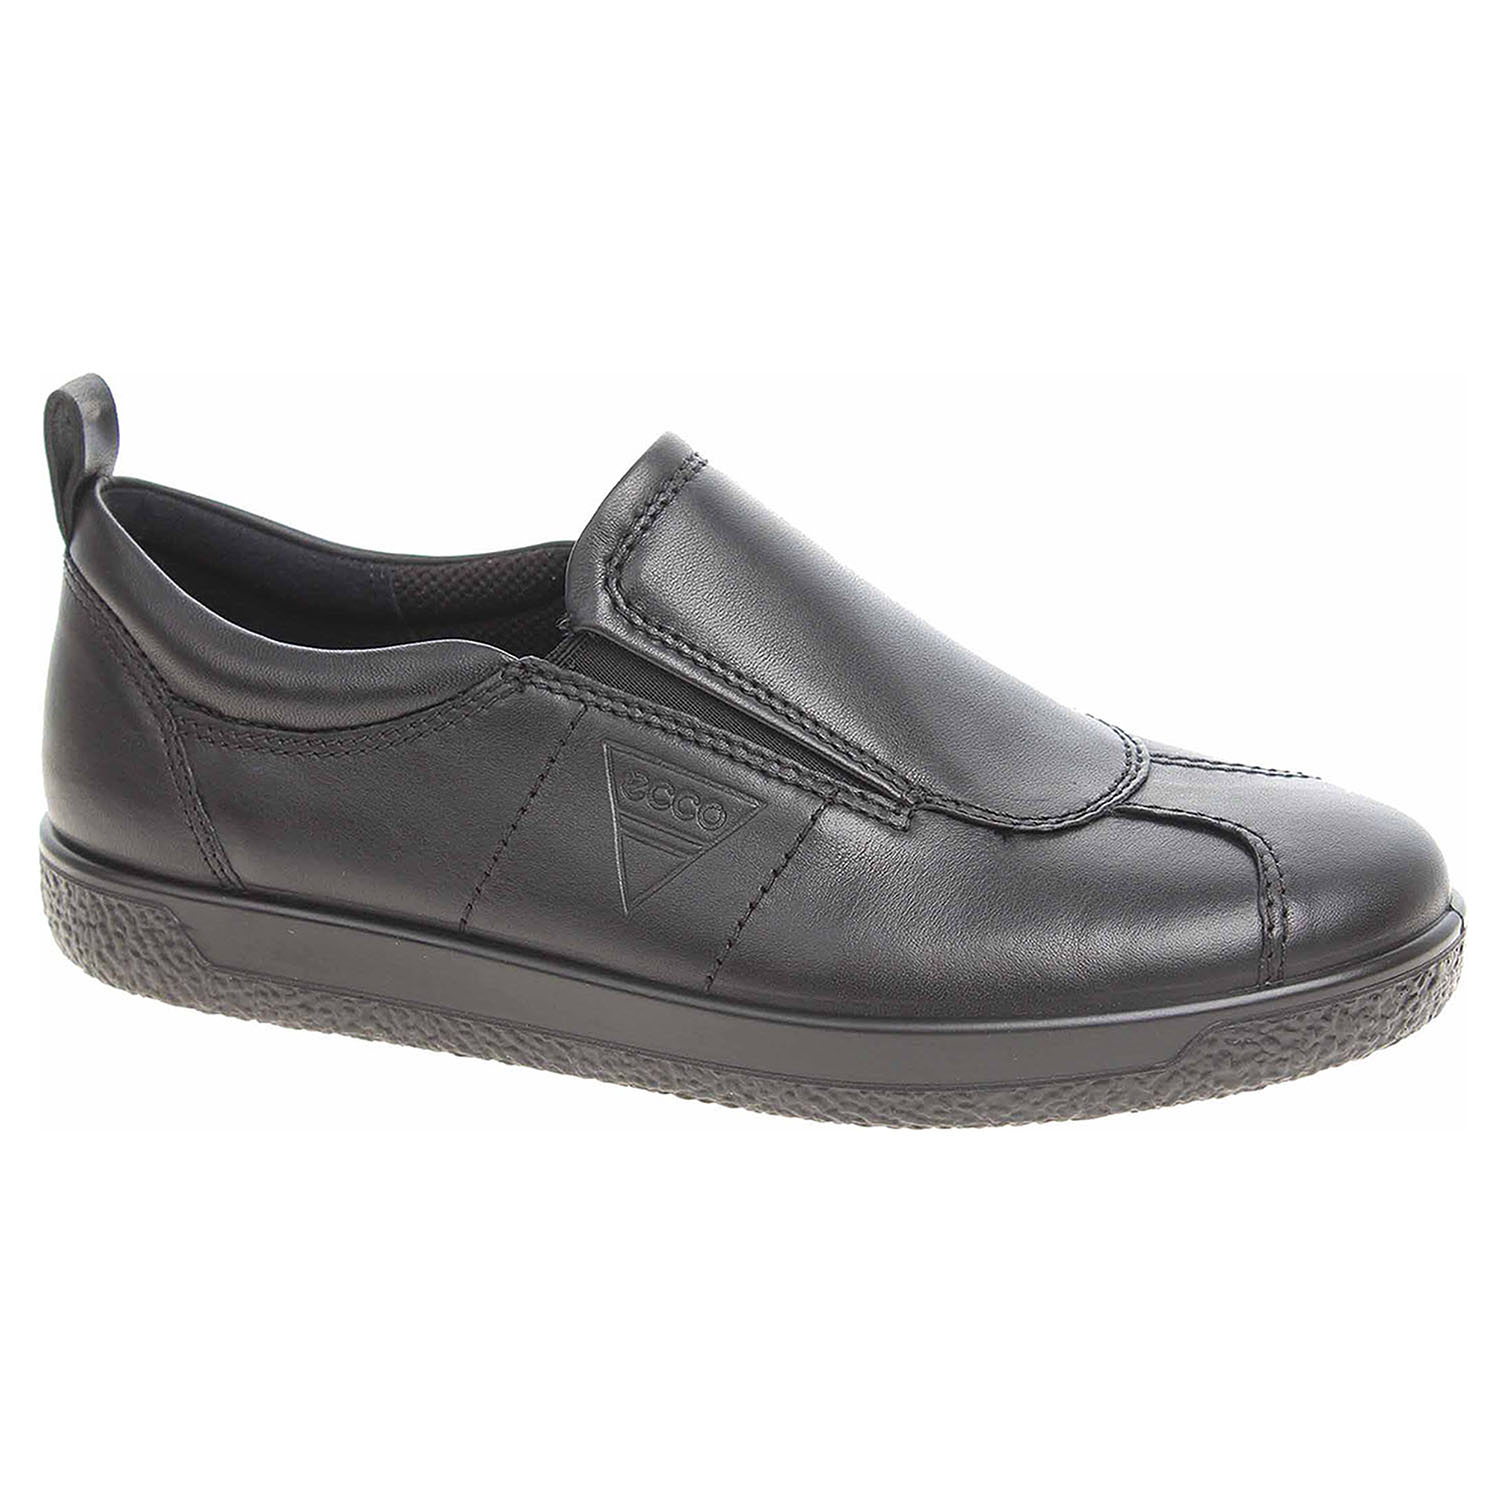 Ecco Soft 1 Ladies 40054301001 black